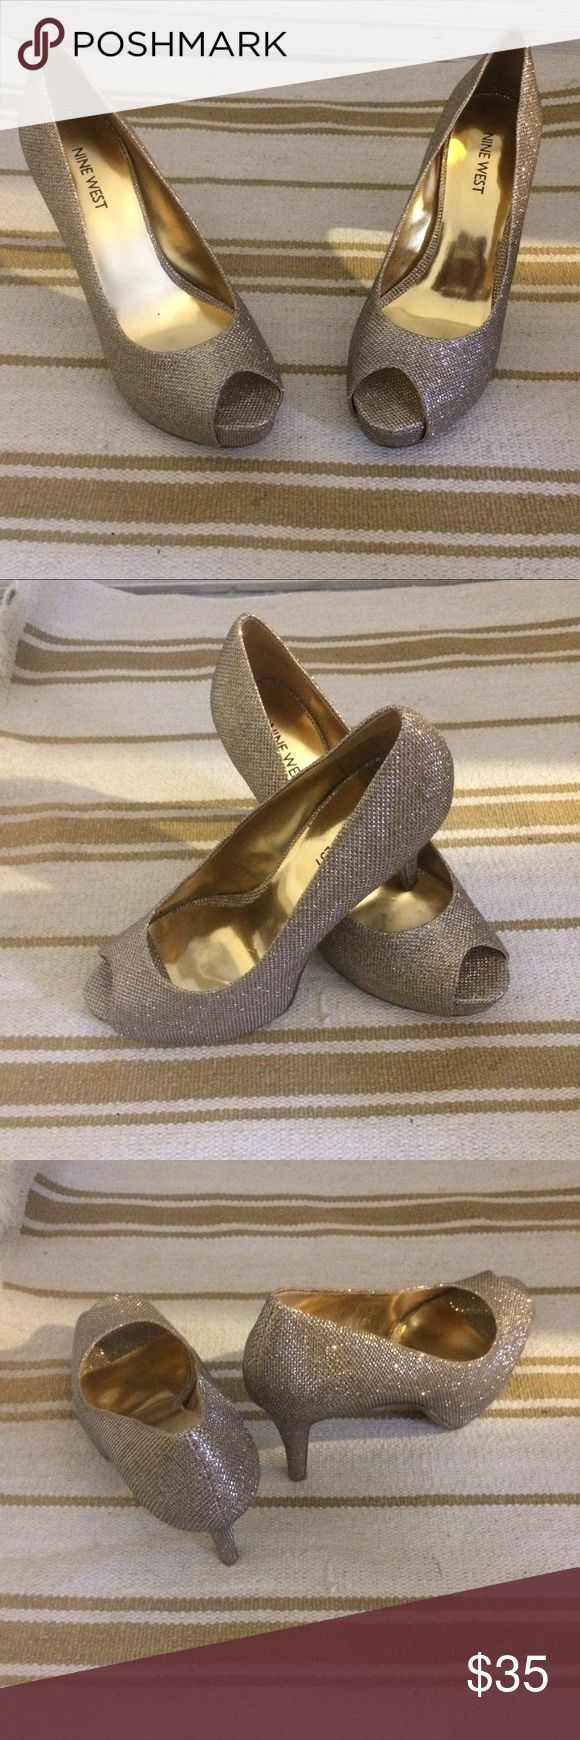 Nine West sparkling gold peep toe heels Super cute peep toe gold sparkle heels. Worn twice. In excellent condition! Nine West Shoes Heels